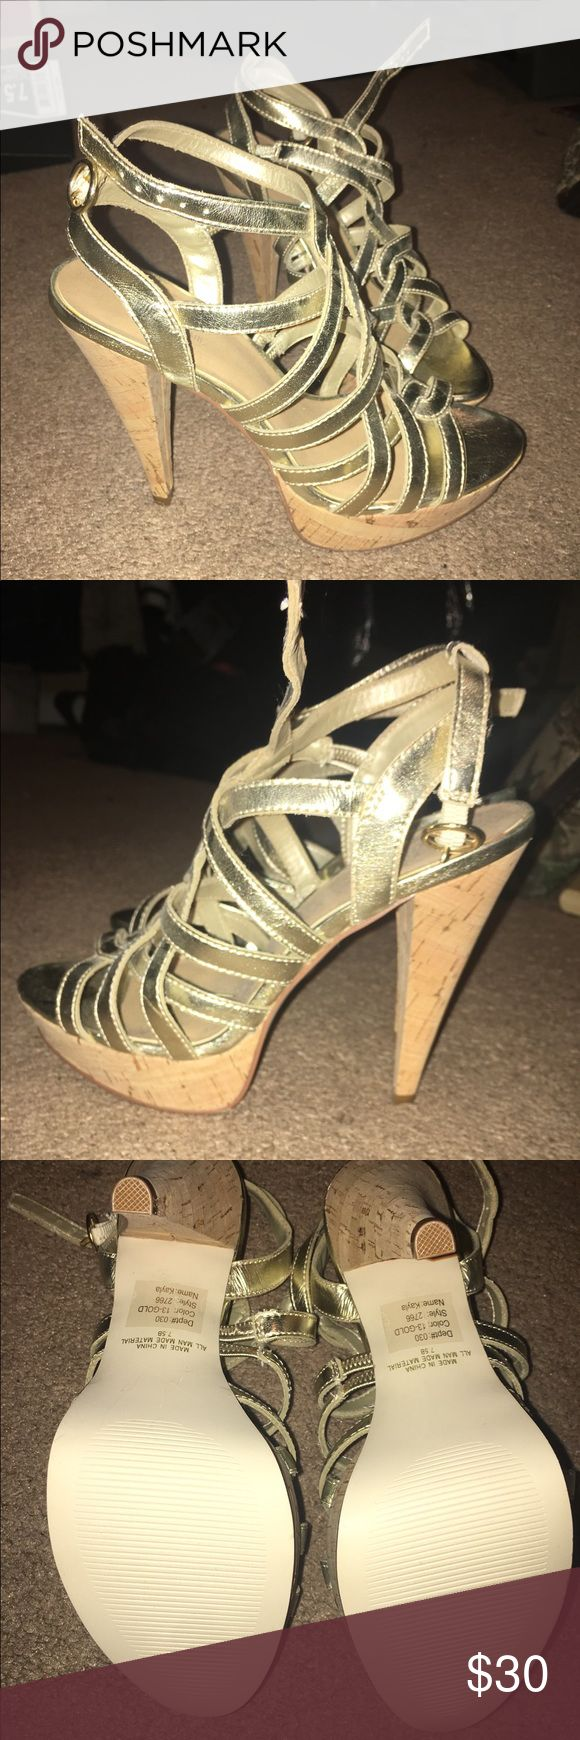 Women's gold high heel sandals 7.5 New never worn women's heels size 7.5. No box. Comes from a smoke free home. Wild Pair Shoes Heels